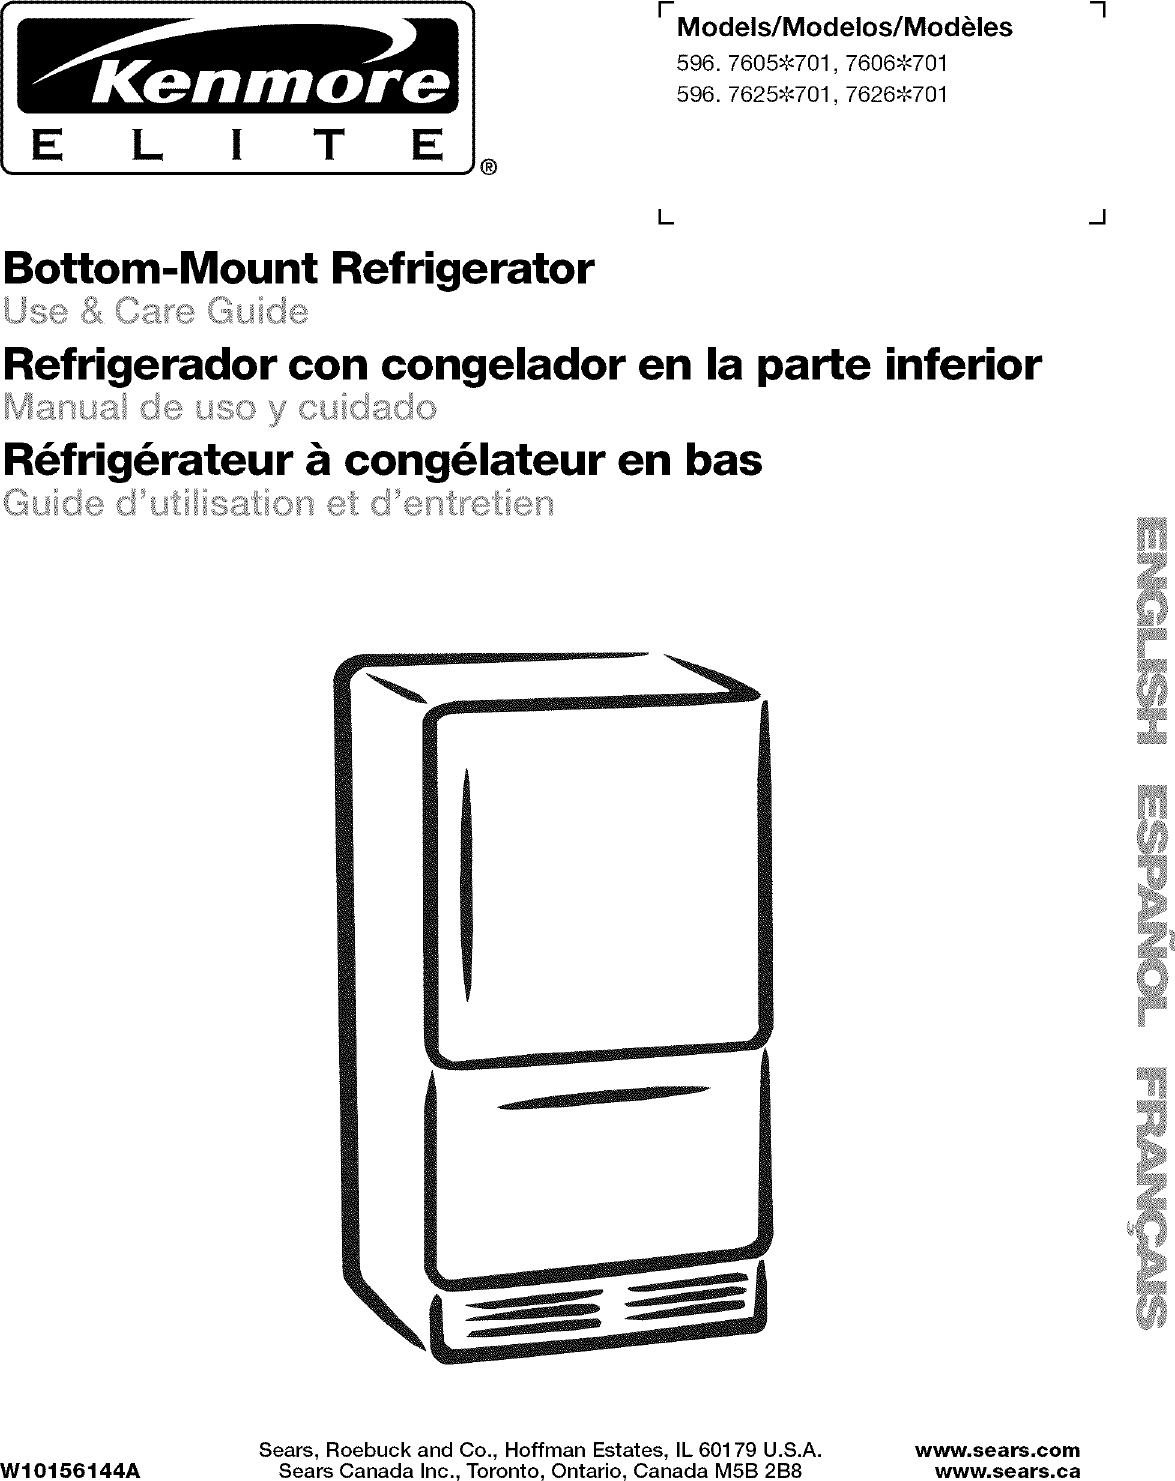 Kenmore Elite 59676059701 User Manual BOTTOM MOUNT